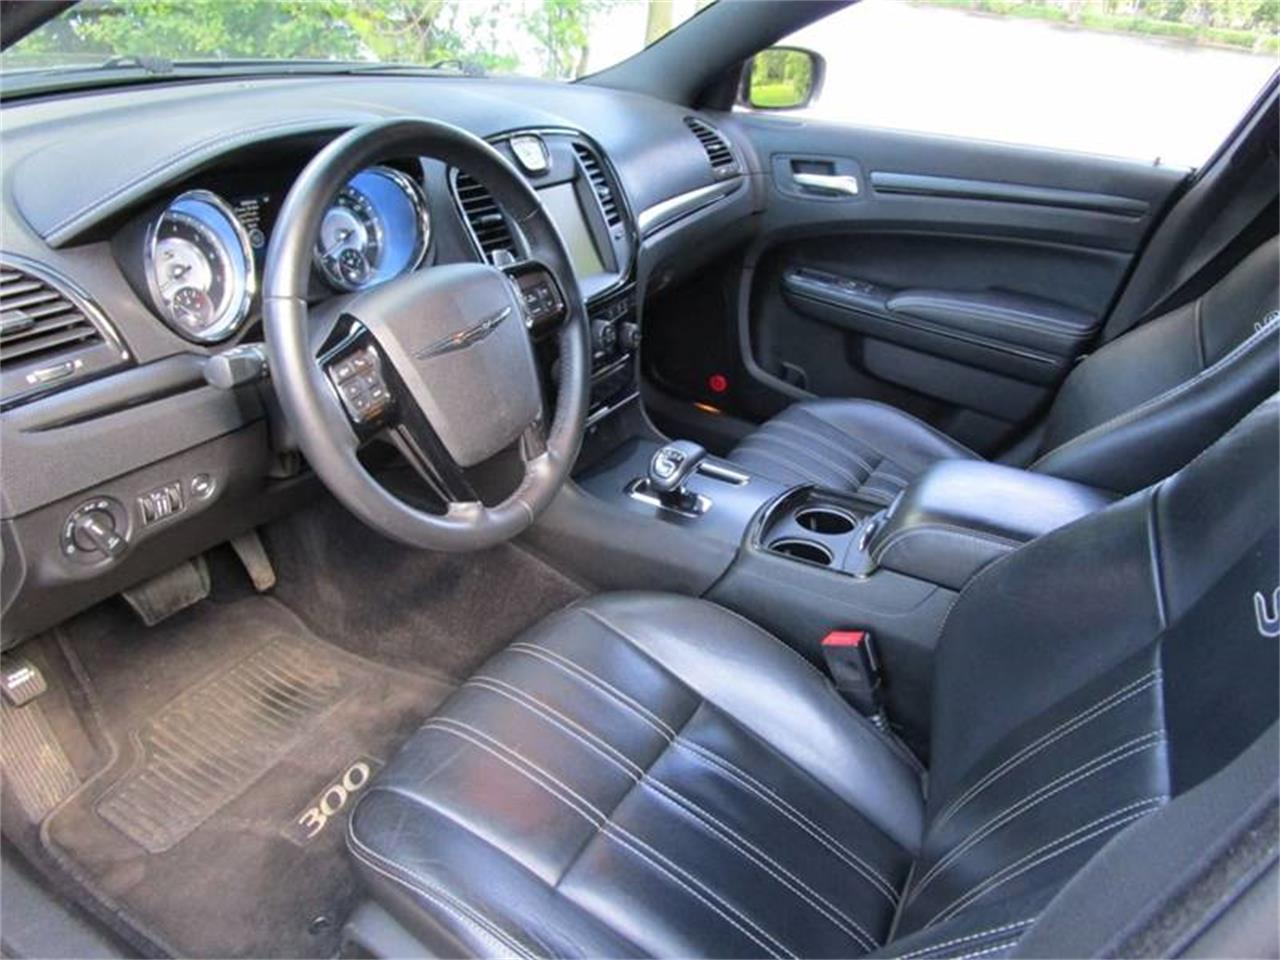 2012 Chrysler 300 for sale in Stanley, WI – photo 15